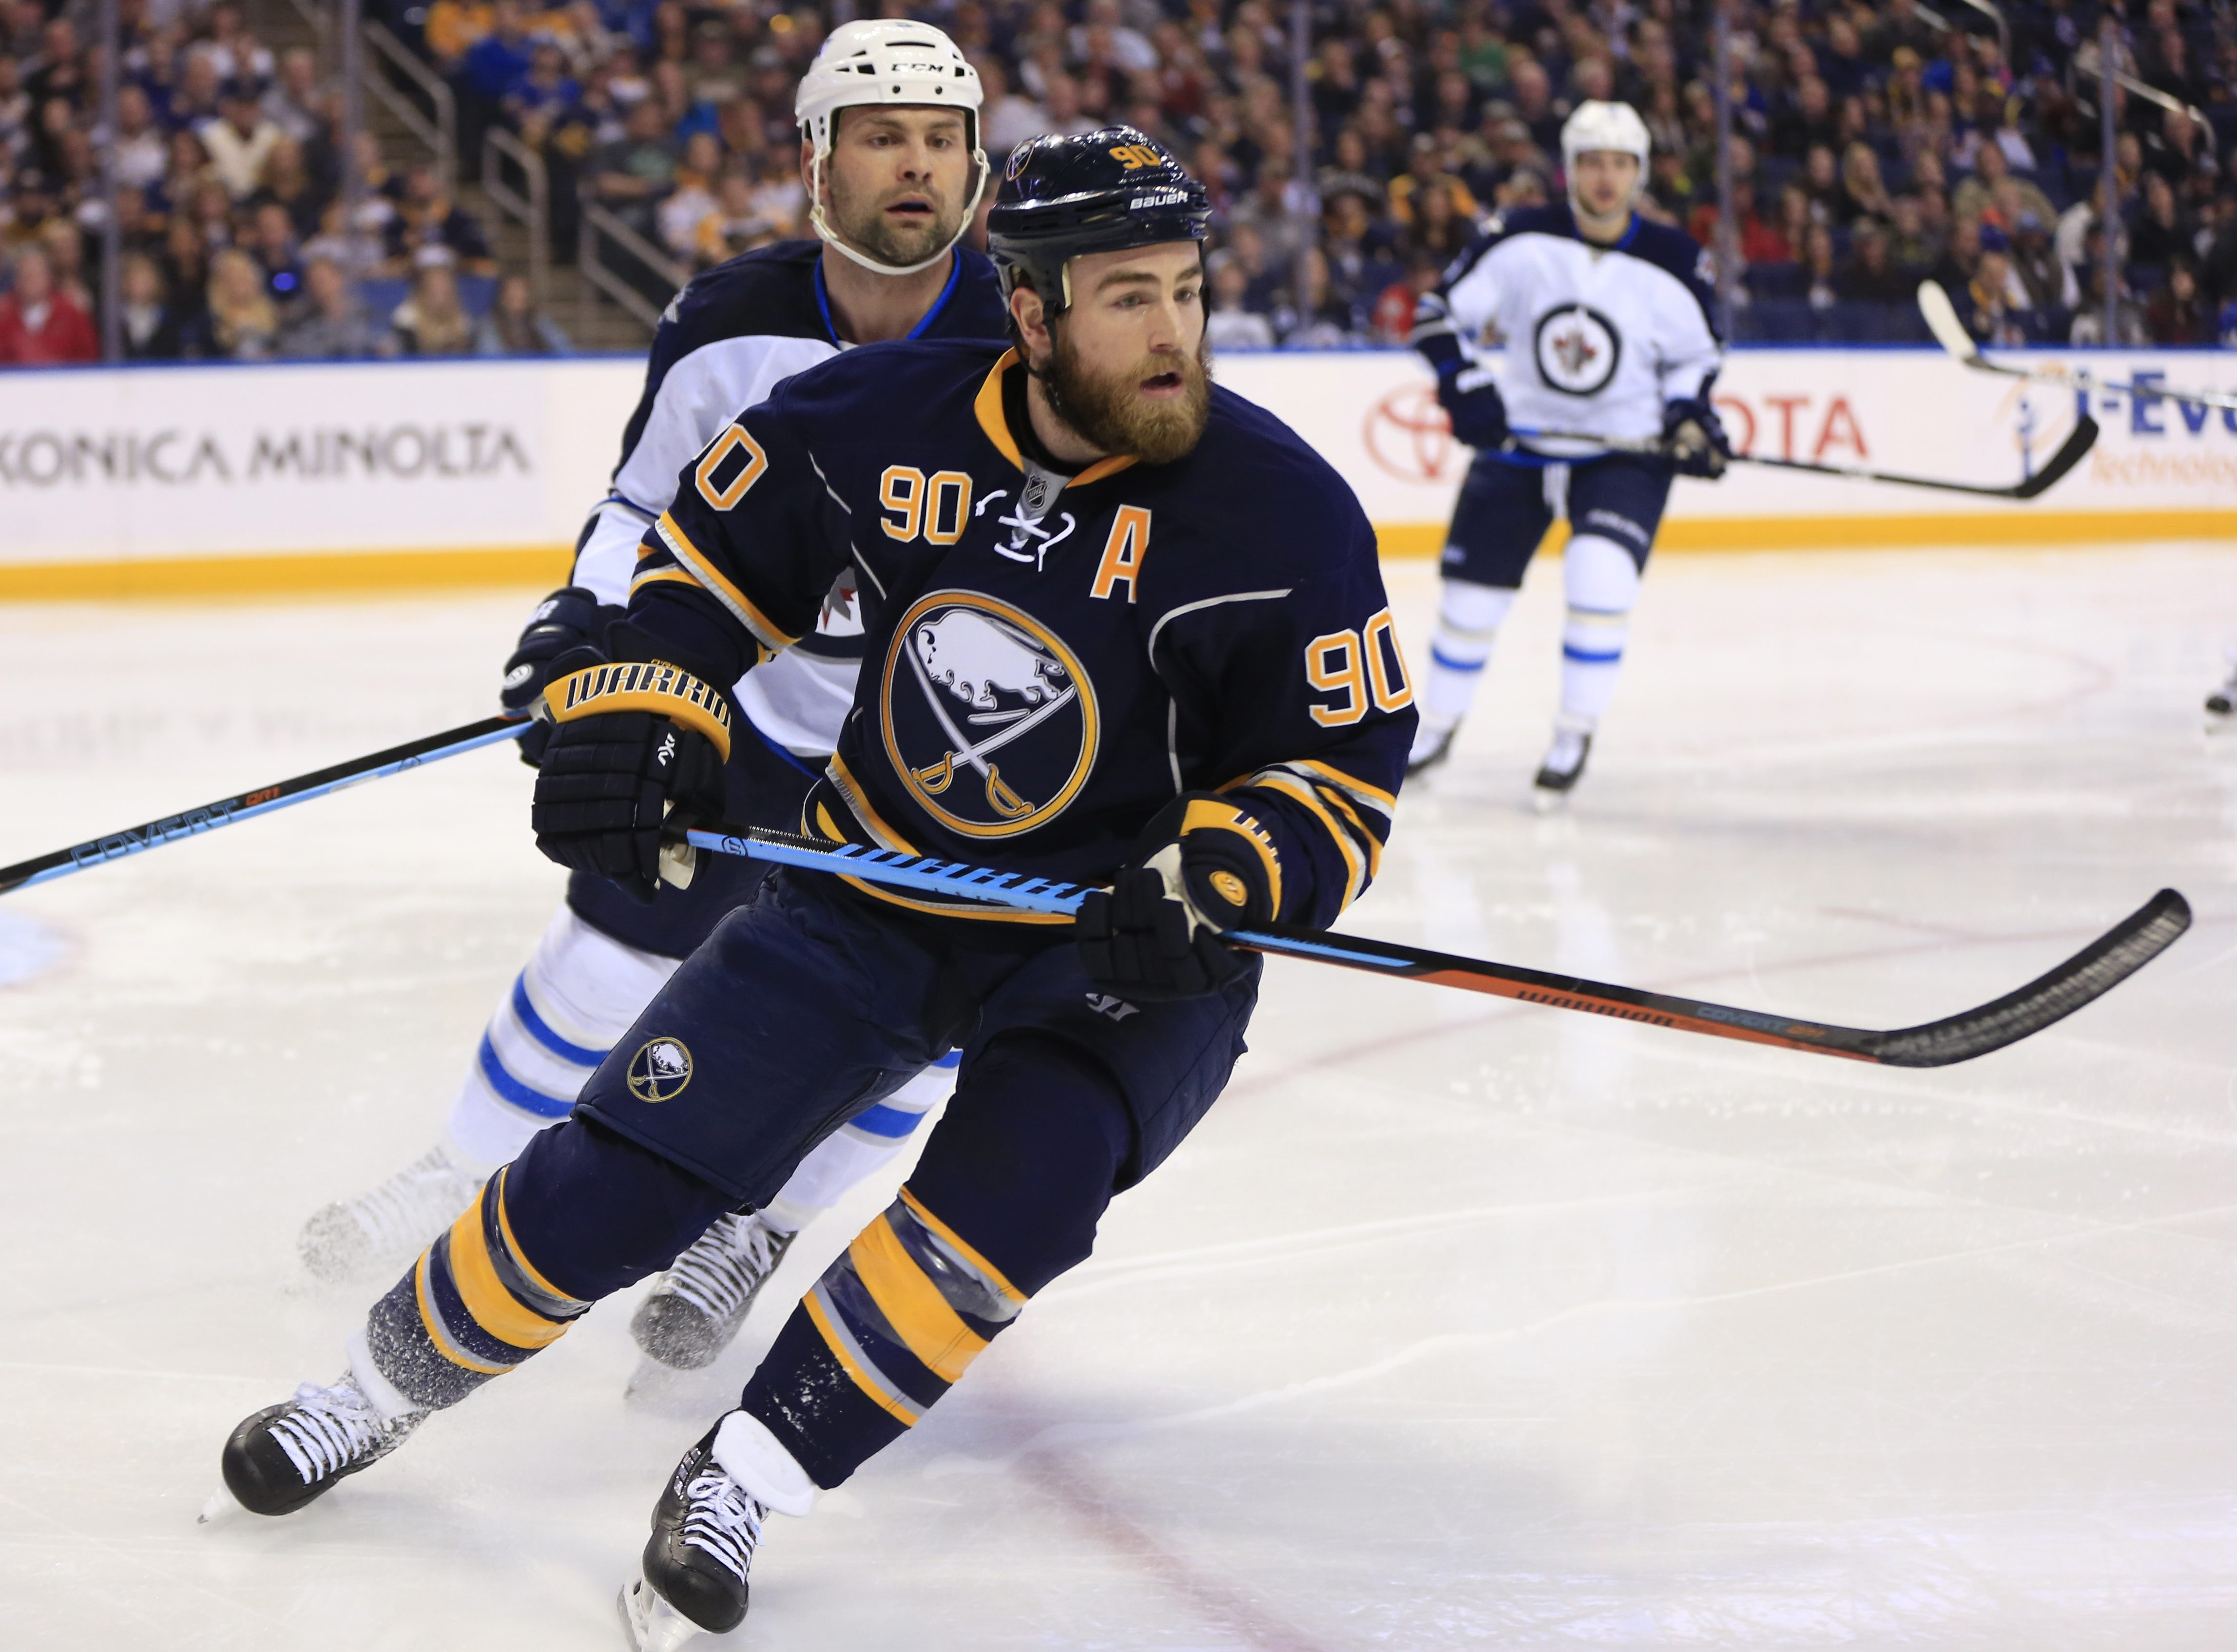 Ryan O'Reilly will test his injury again Wednesday before deciding if he can play Thursday. (Harry Scull Jr./Buffalo News file photo)